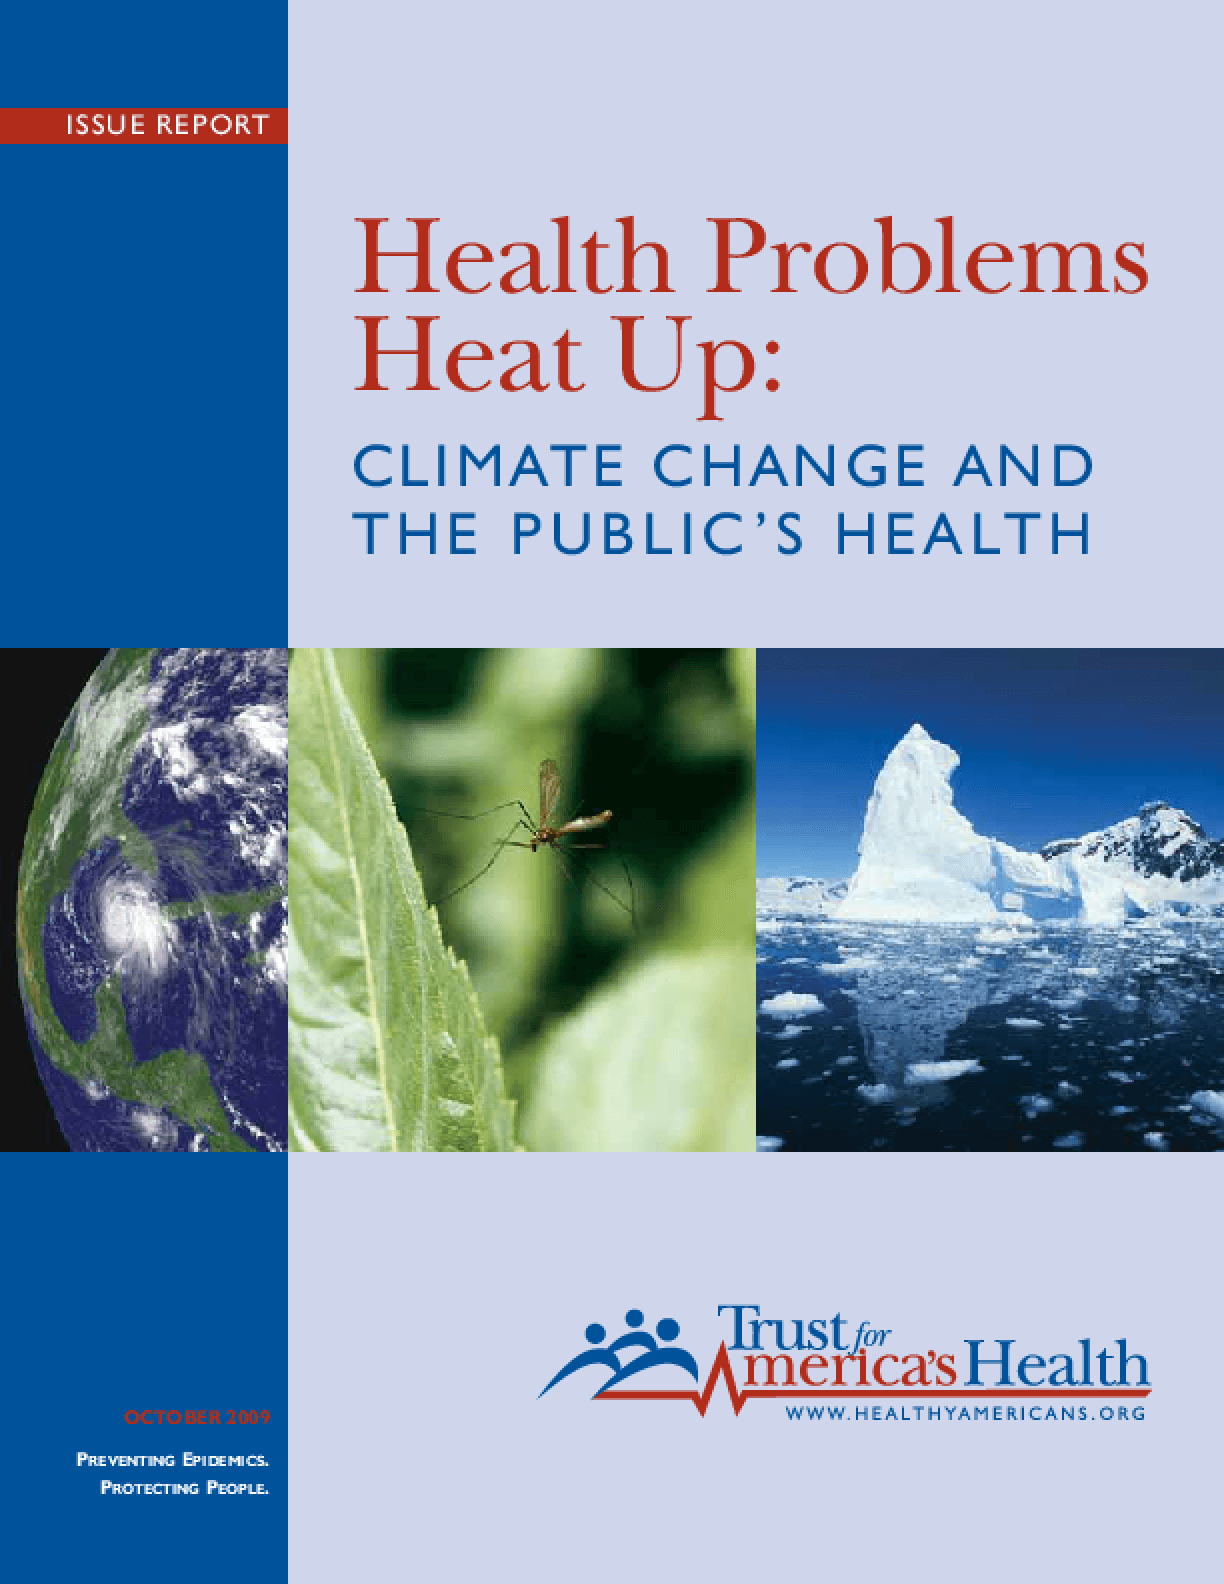 Health Problems Heat Up: Climate Change and the Public's Health